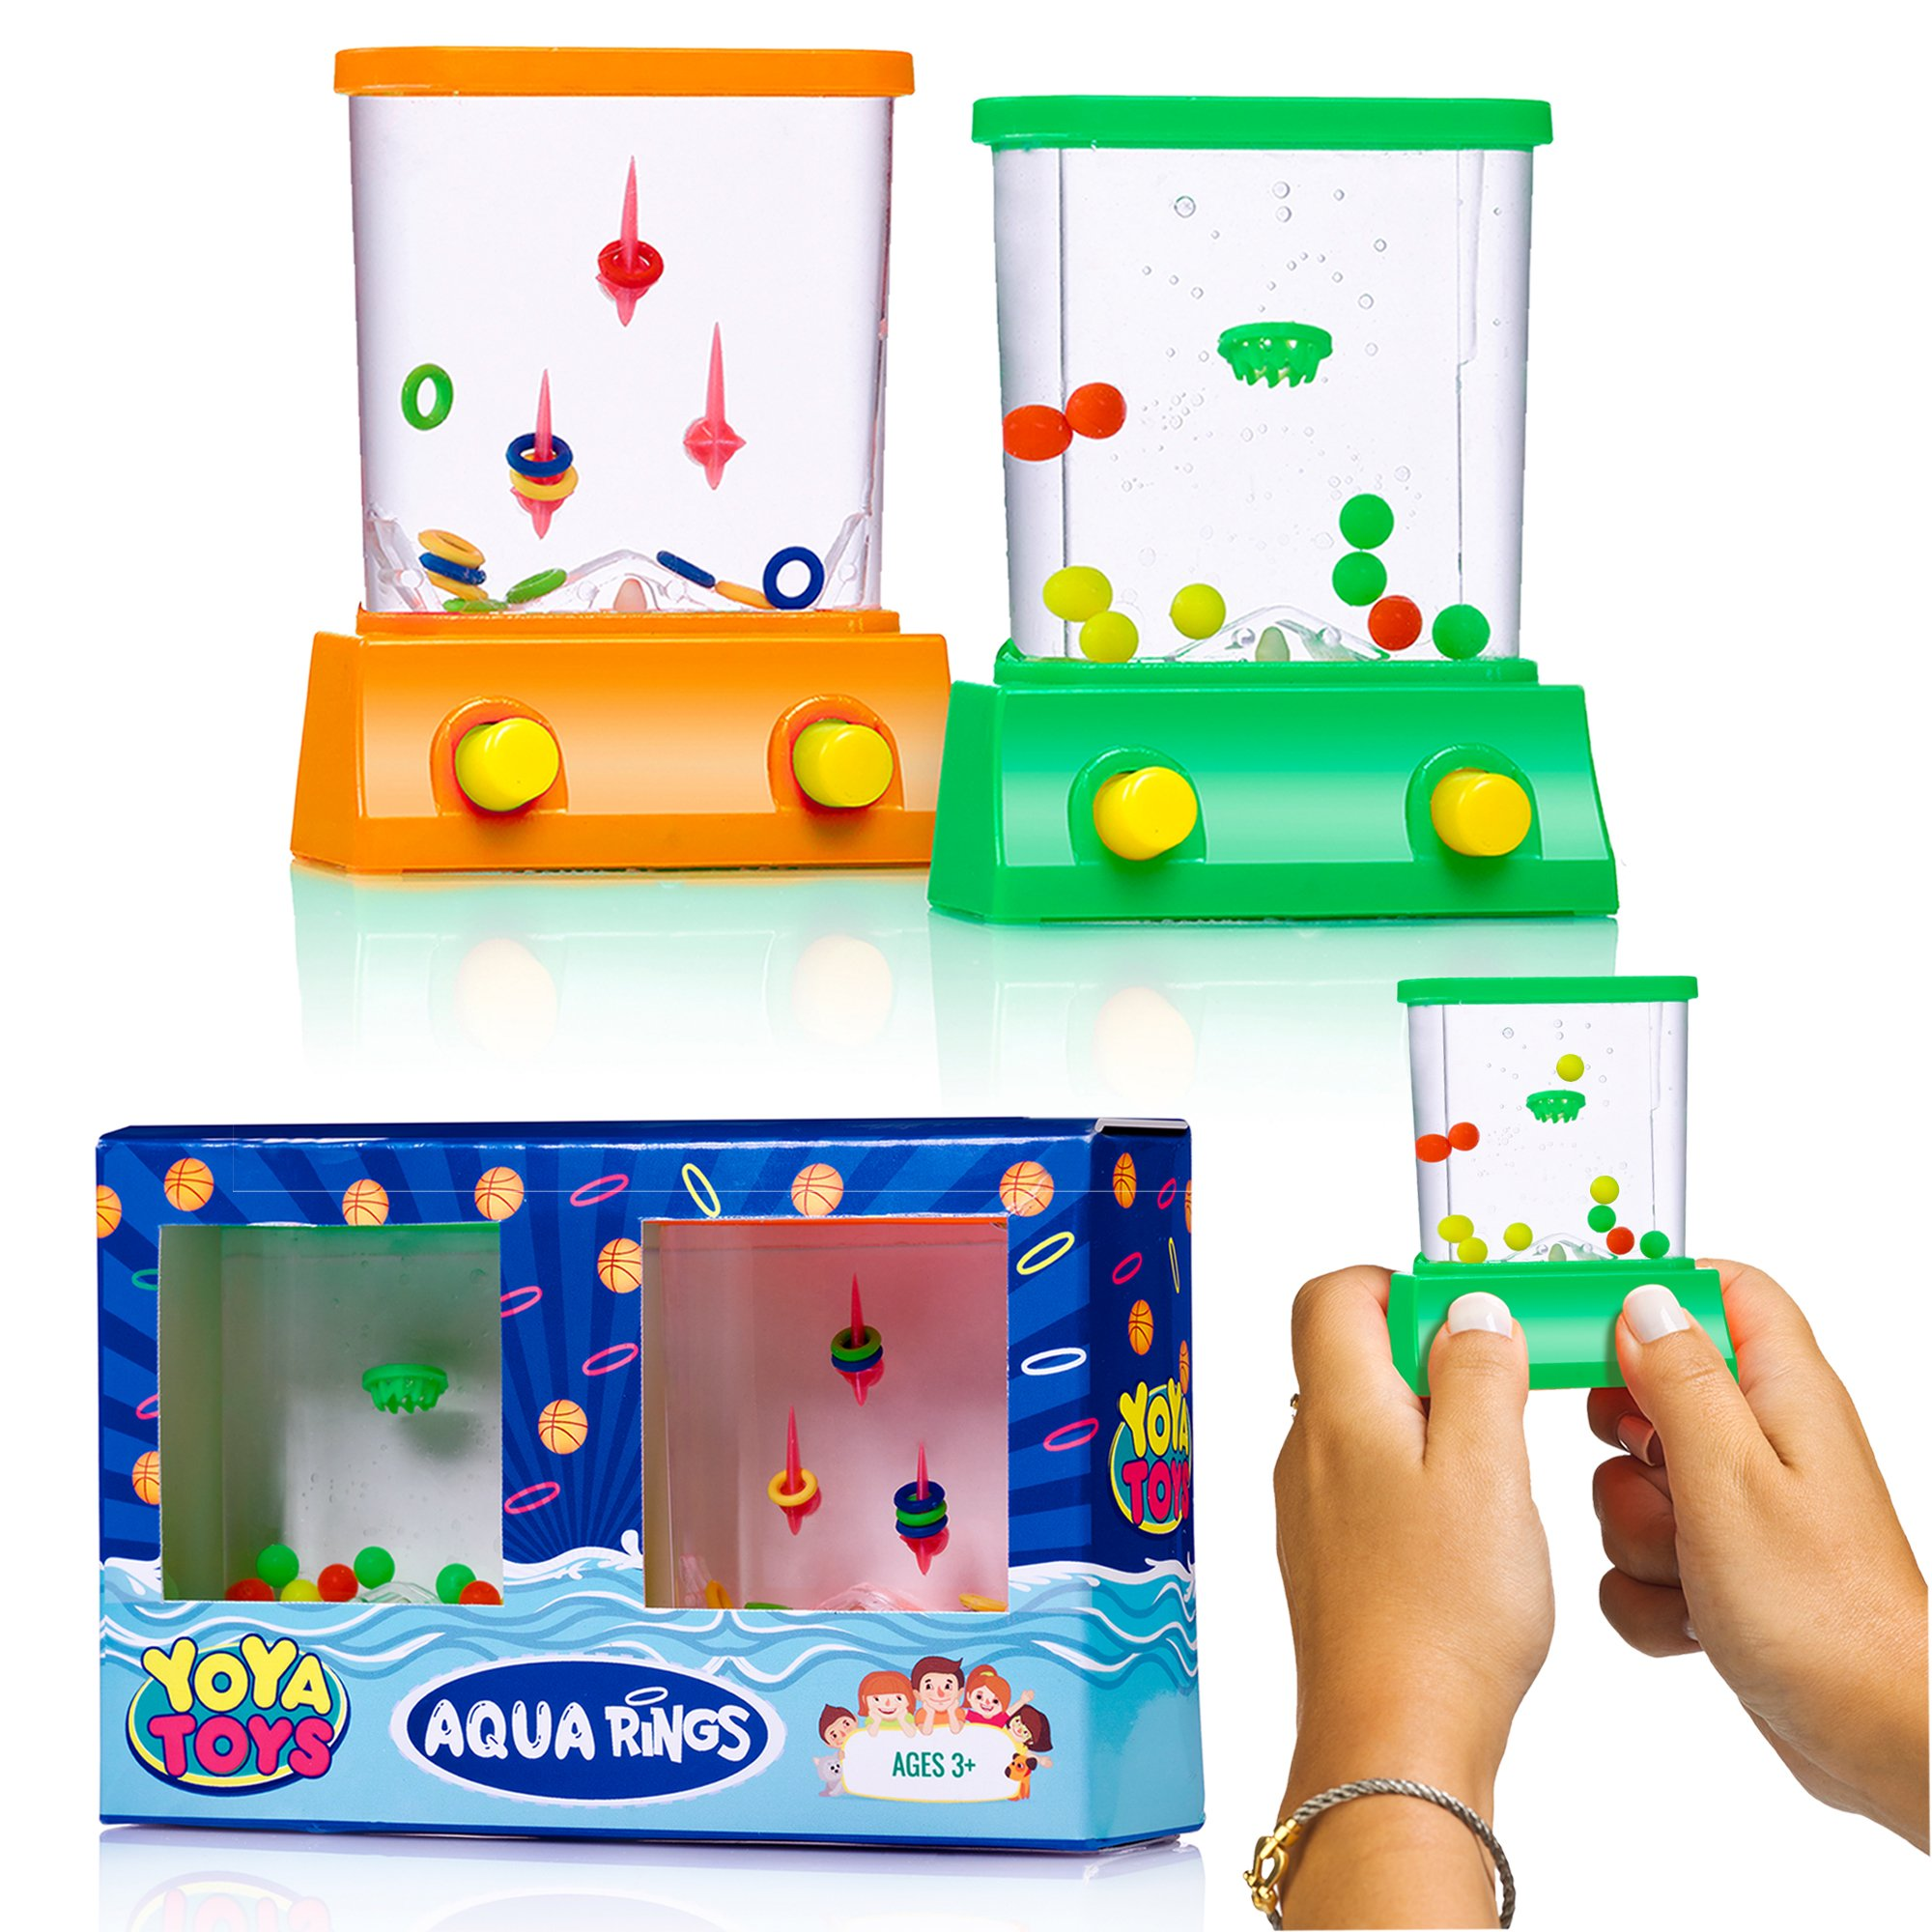 Water Game Toy : Amazon handheld water game rings colors may vary